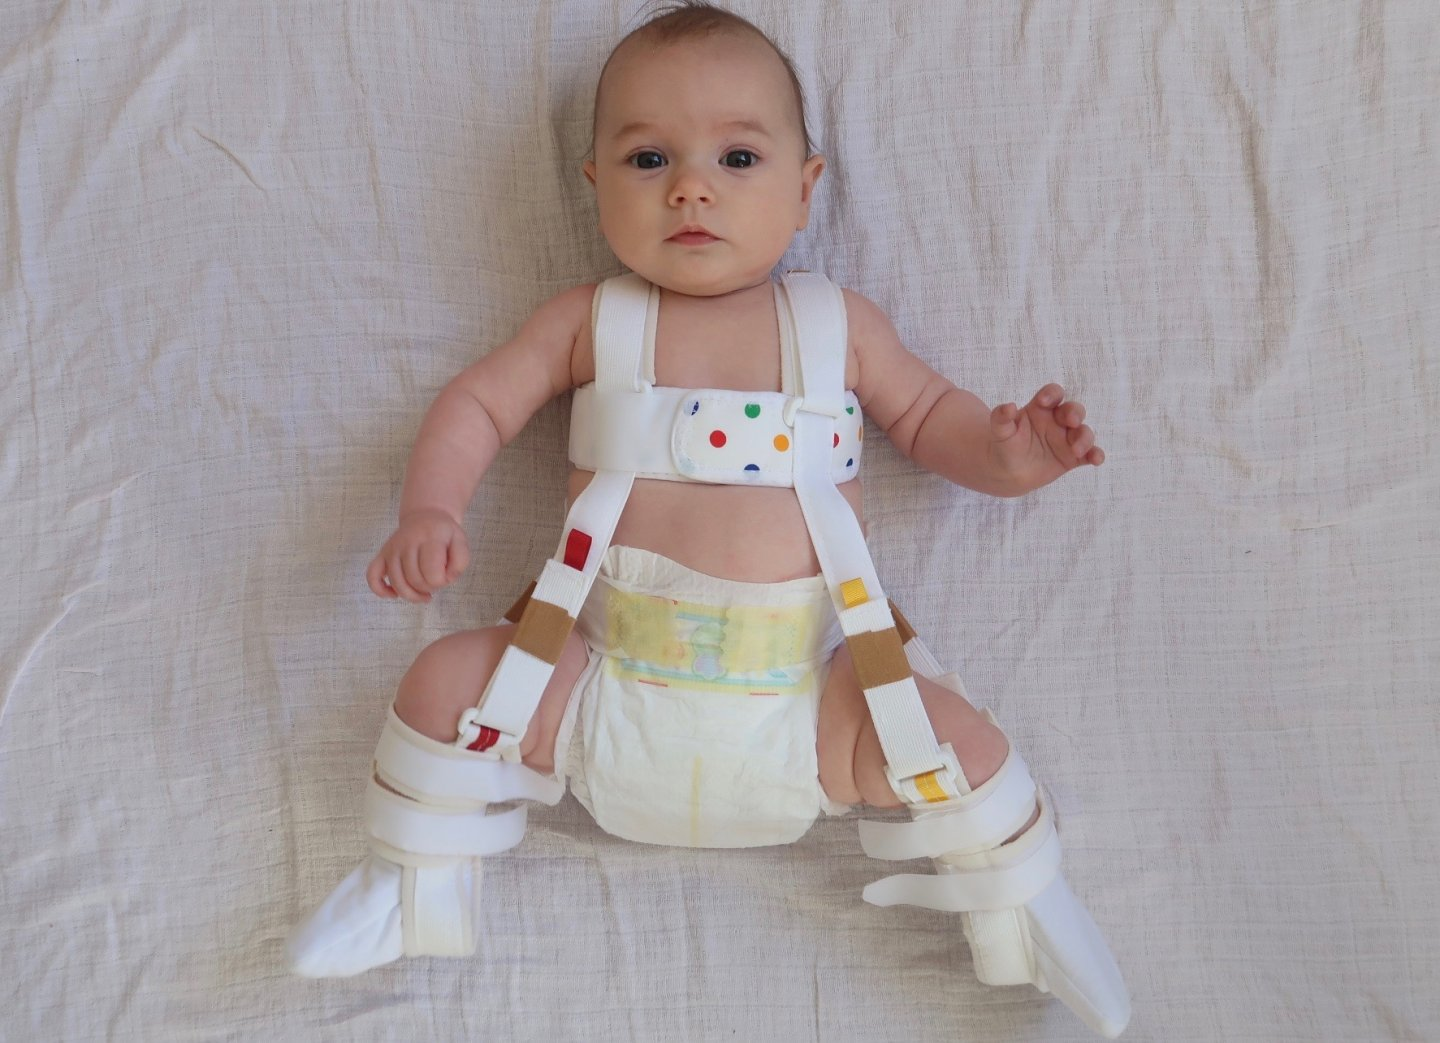 baby wearing Pavlik harness